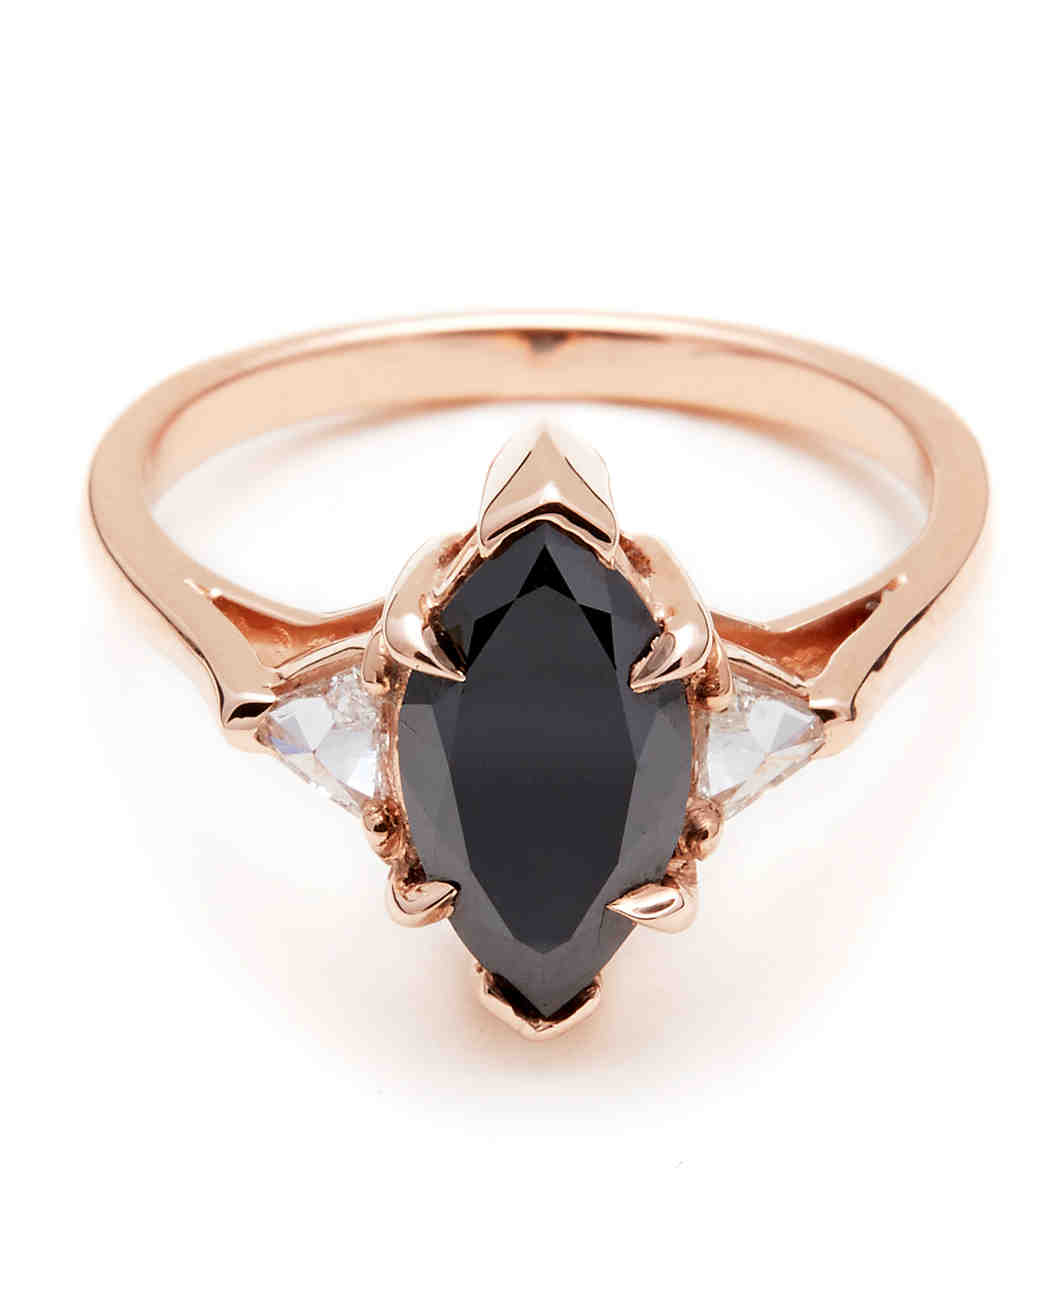 Wedding Rings With Black Diamonds | The New Lbd The Little Black Diamond Engagement Ring Martha